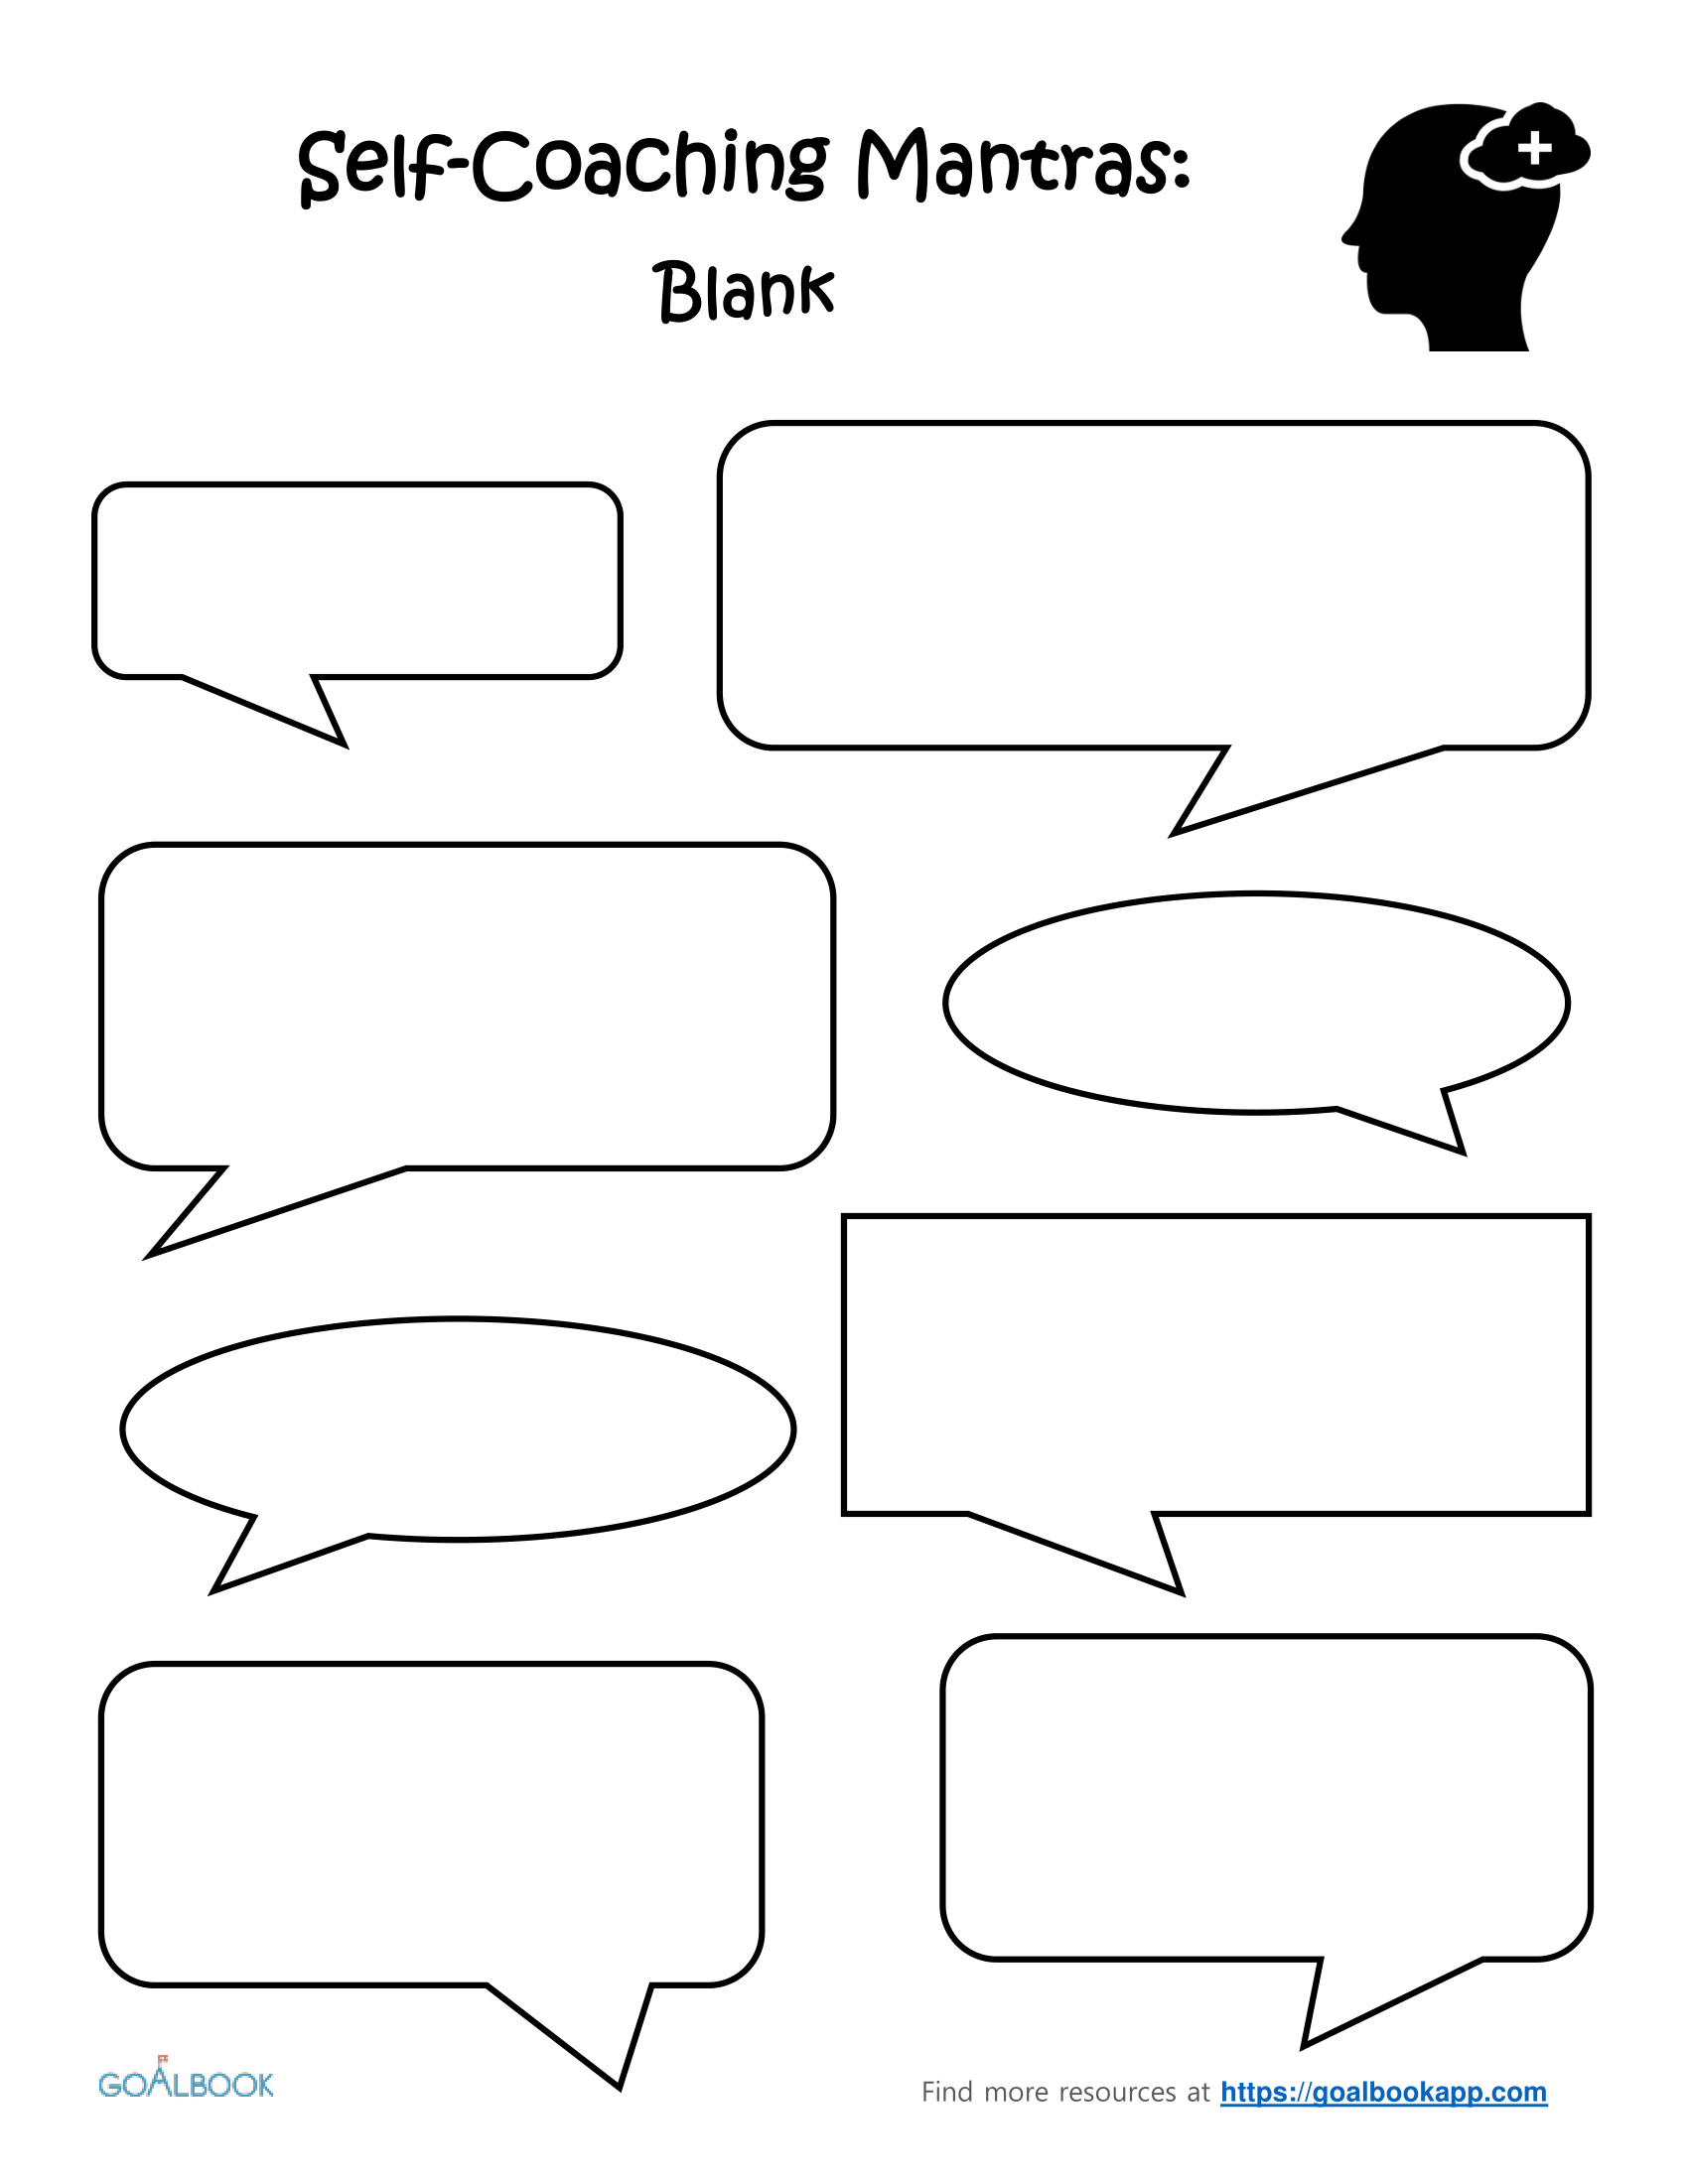 Self-Coaching Mantras: Blank Template